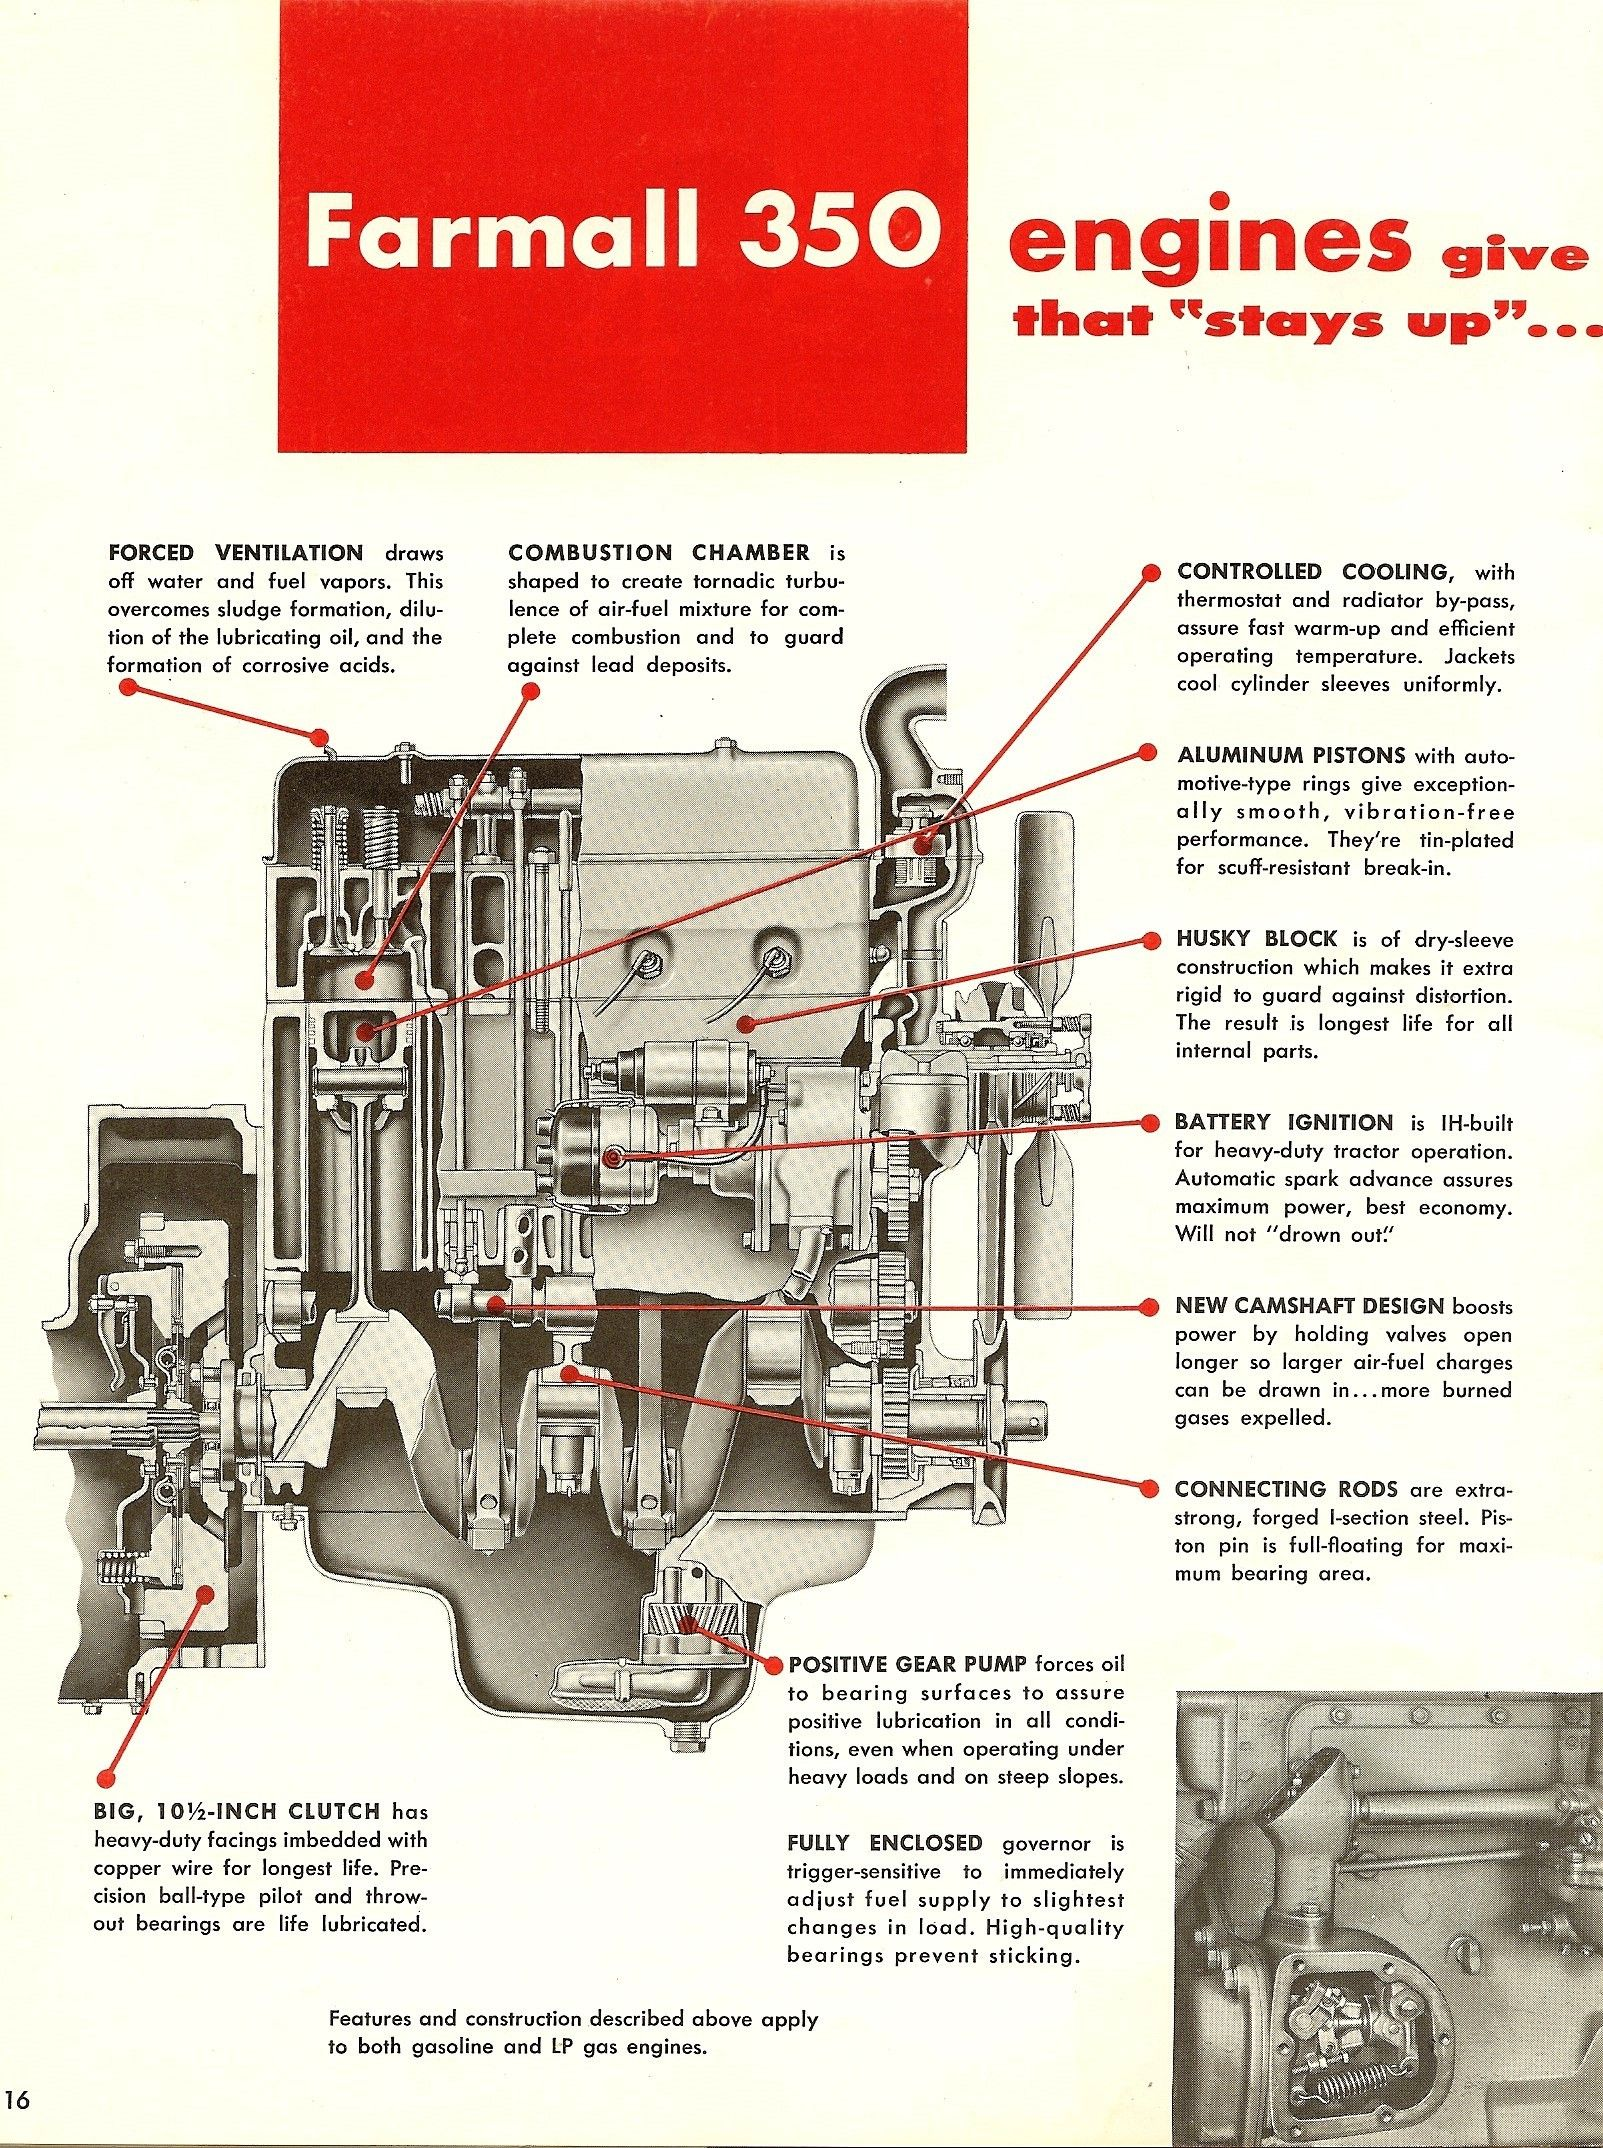 Wiring Diagram For 350 Farmall 350 | Wiring Diagram on